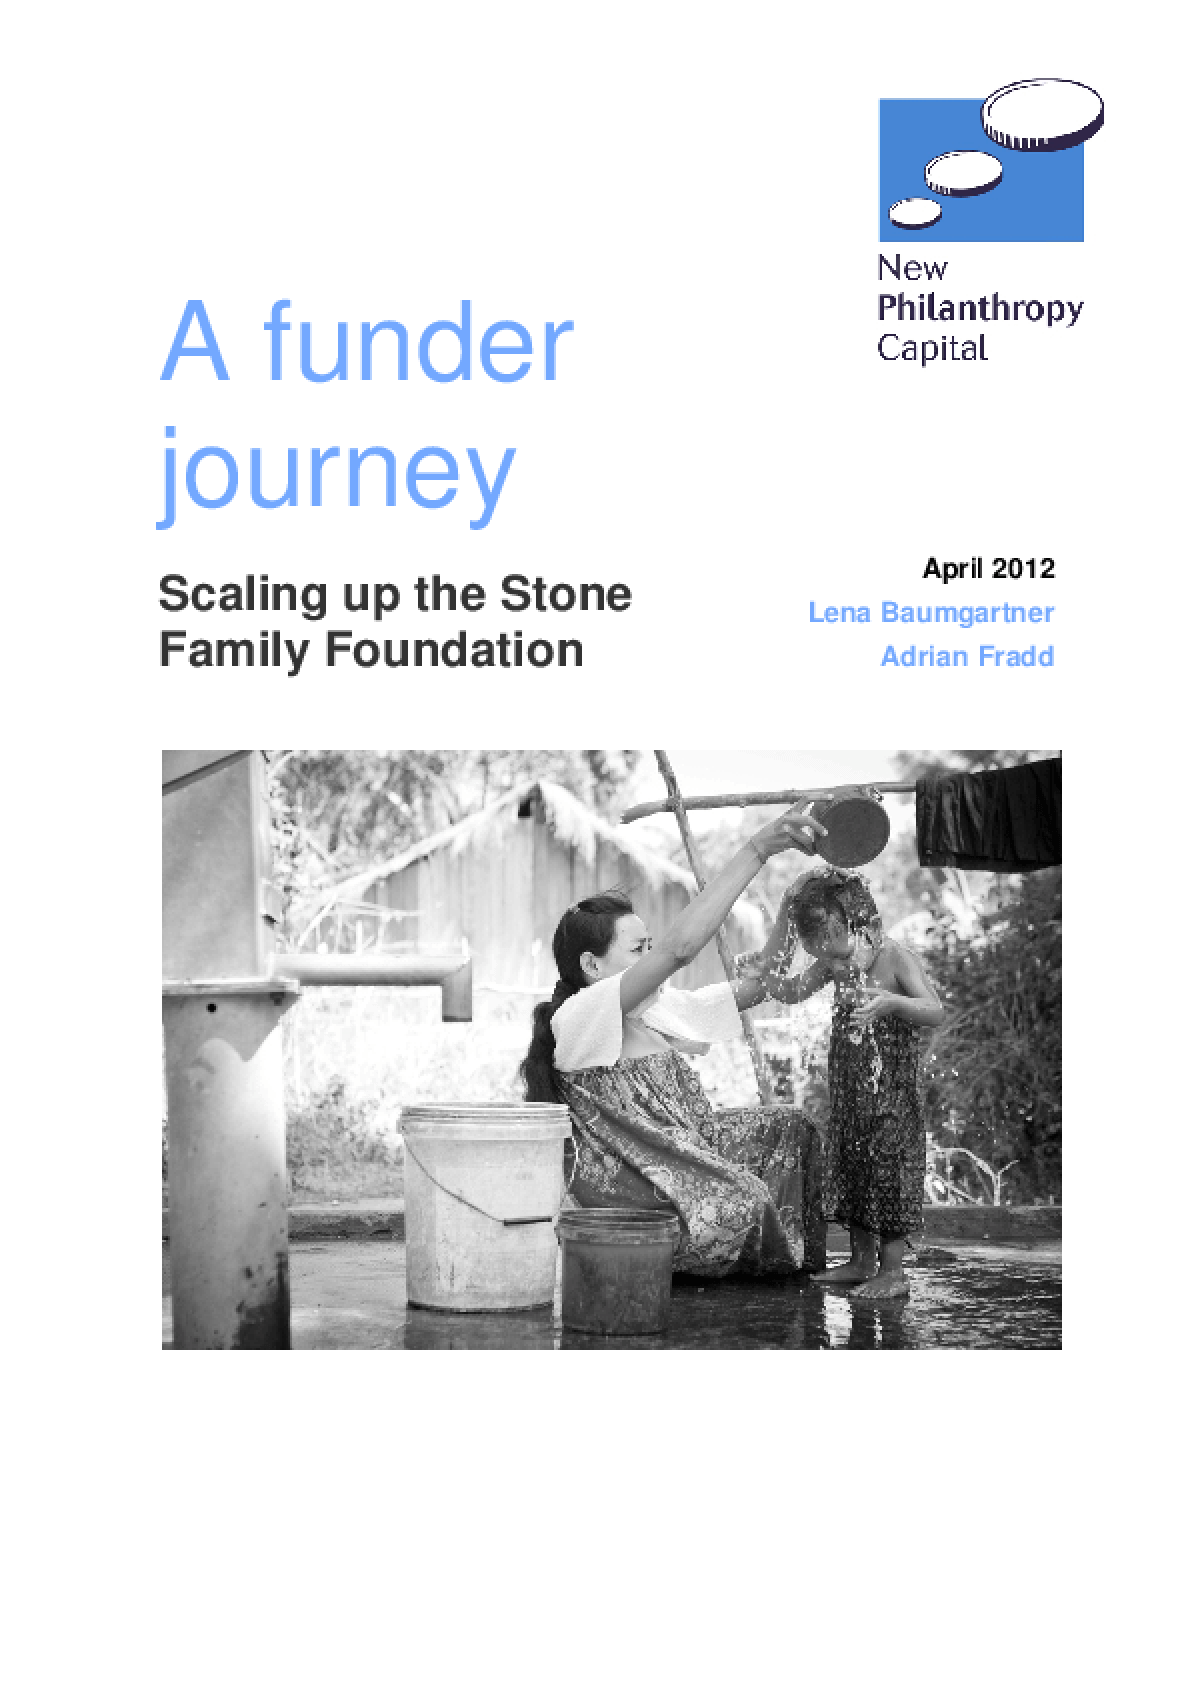 A Funder Journey: Scaling Up the Stone Family Foundation